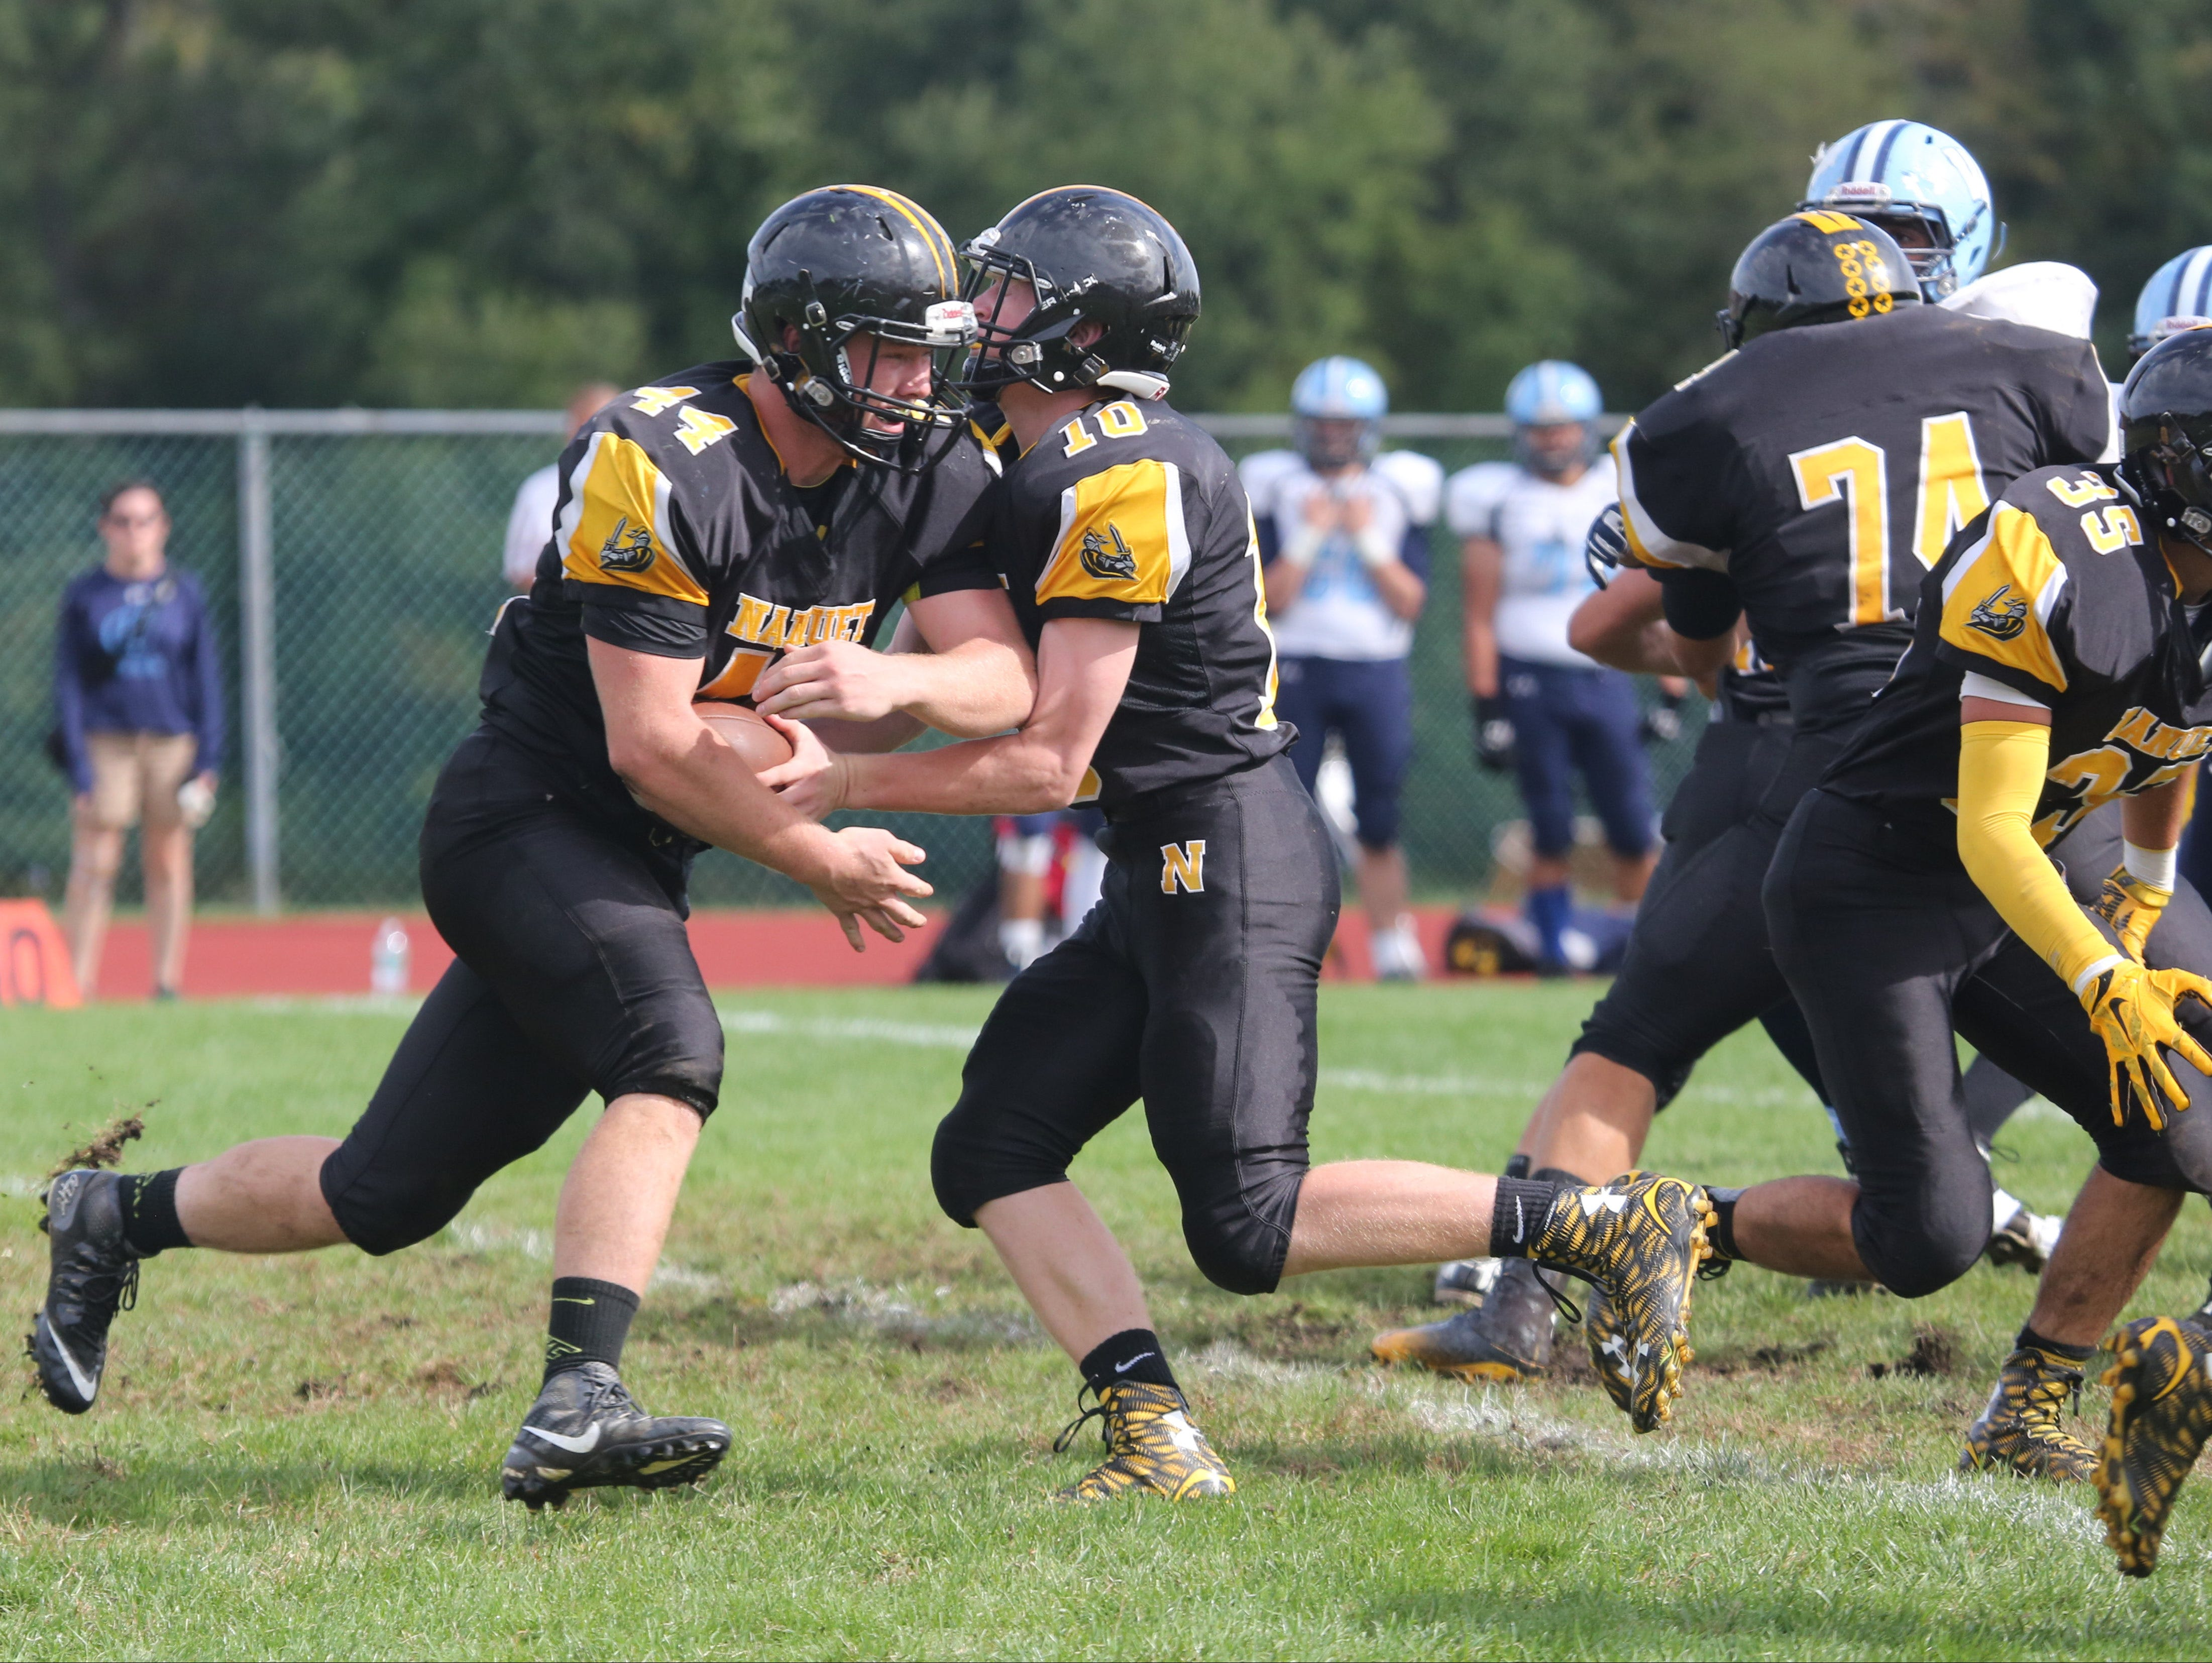 Nanuet quarterback Thomas Fay hands off to Connor Breit during action in the Nanuet vs. Westlake football game in Nanuet, Sept. 26, 2015.